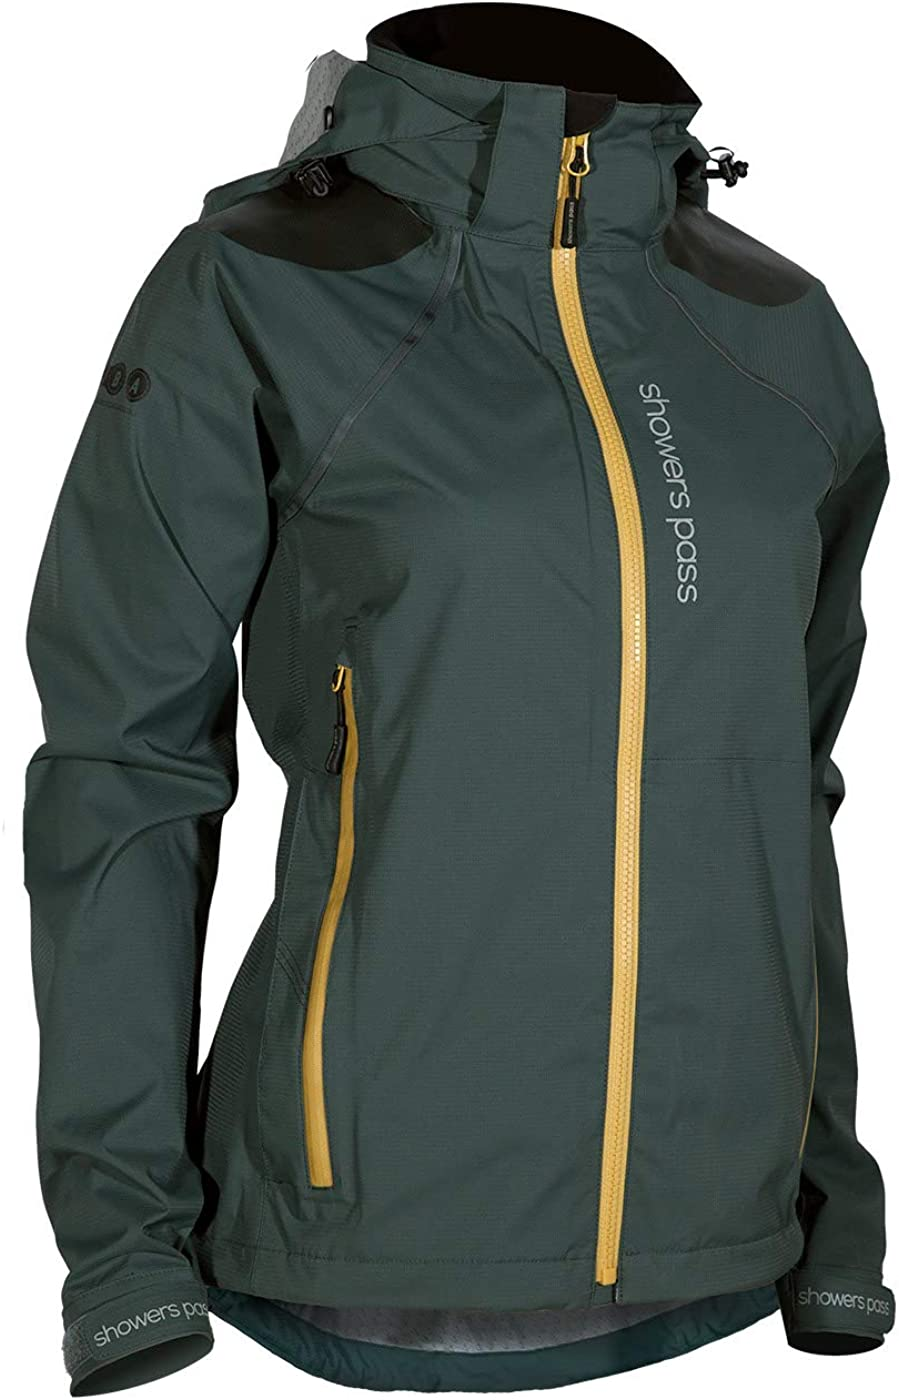 Showers Pass Women's Waterproof Wholesale OFFicial store Jacket IMBA Breathable Cycling